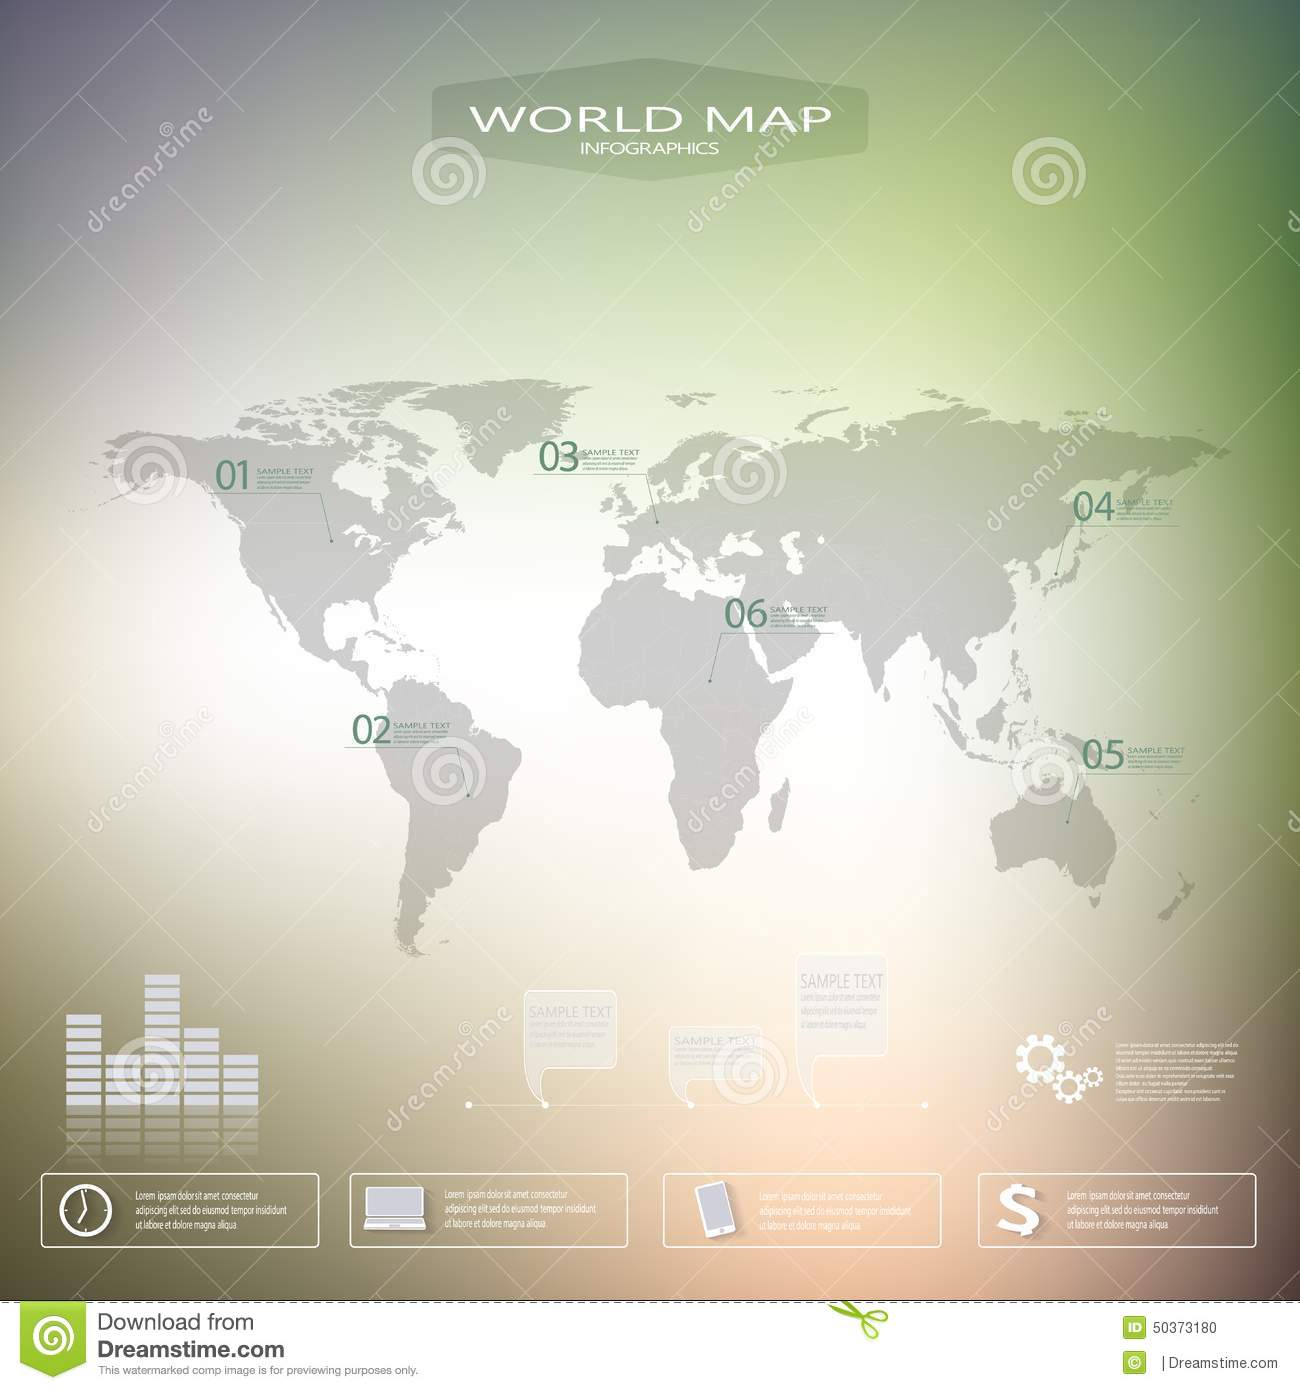 World map background design stock illustration illustration of world map infographic template with blurred background can be used for workflow layout presentation gumiabroncs Image collections